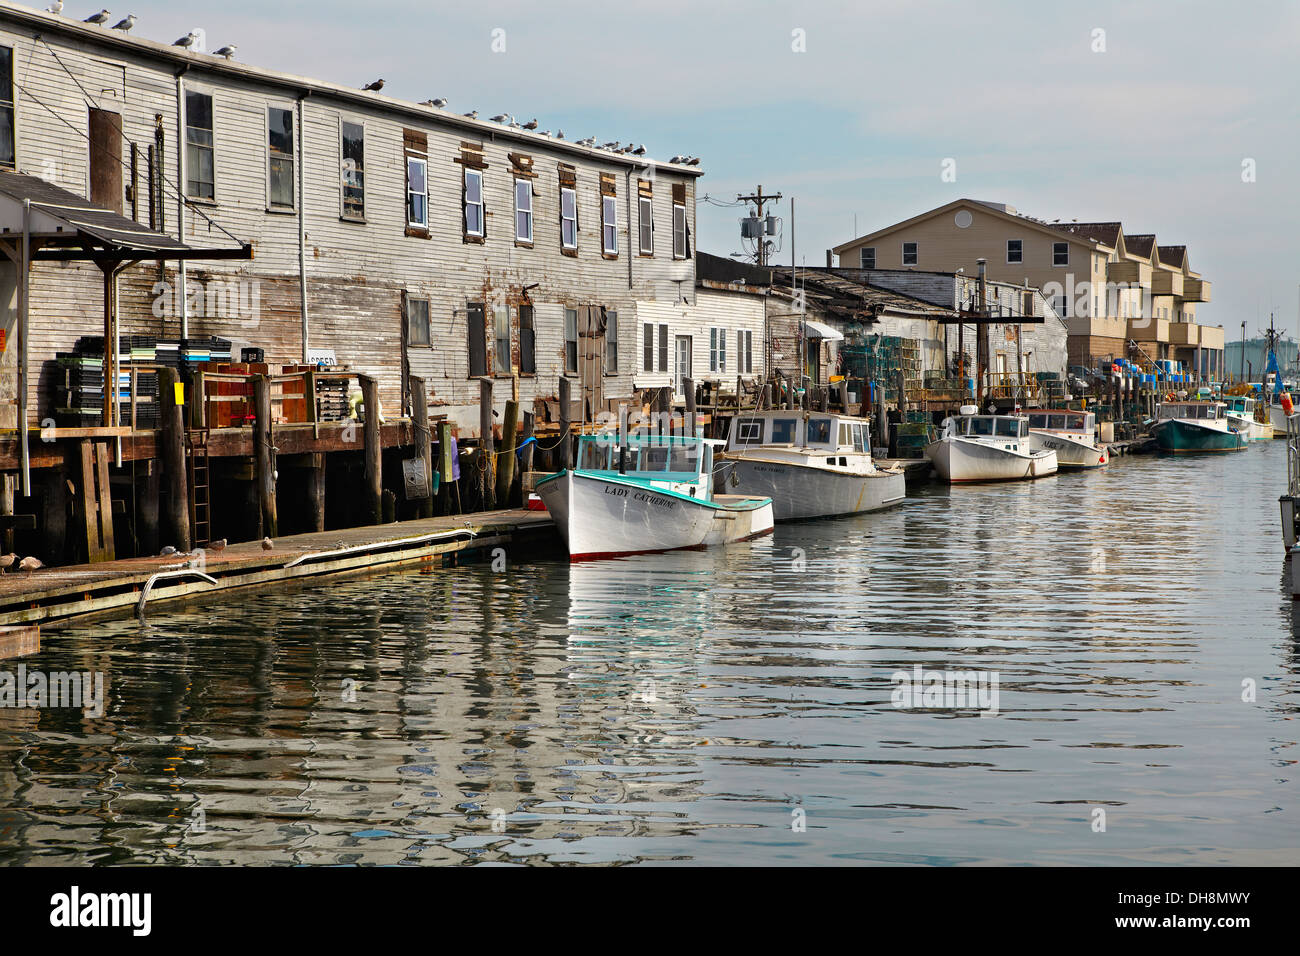 Boats in portland maine harbor stock photo royalty free for Portland maine fishing